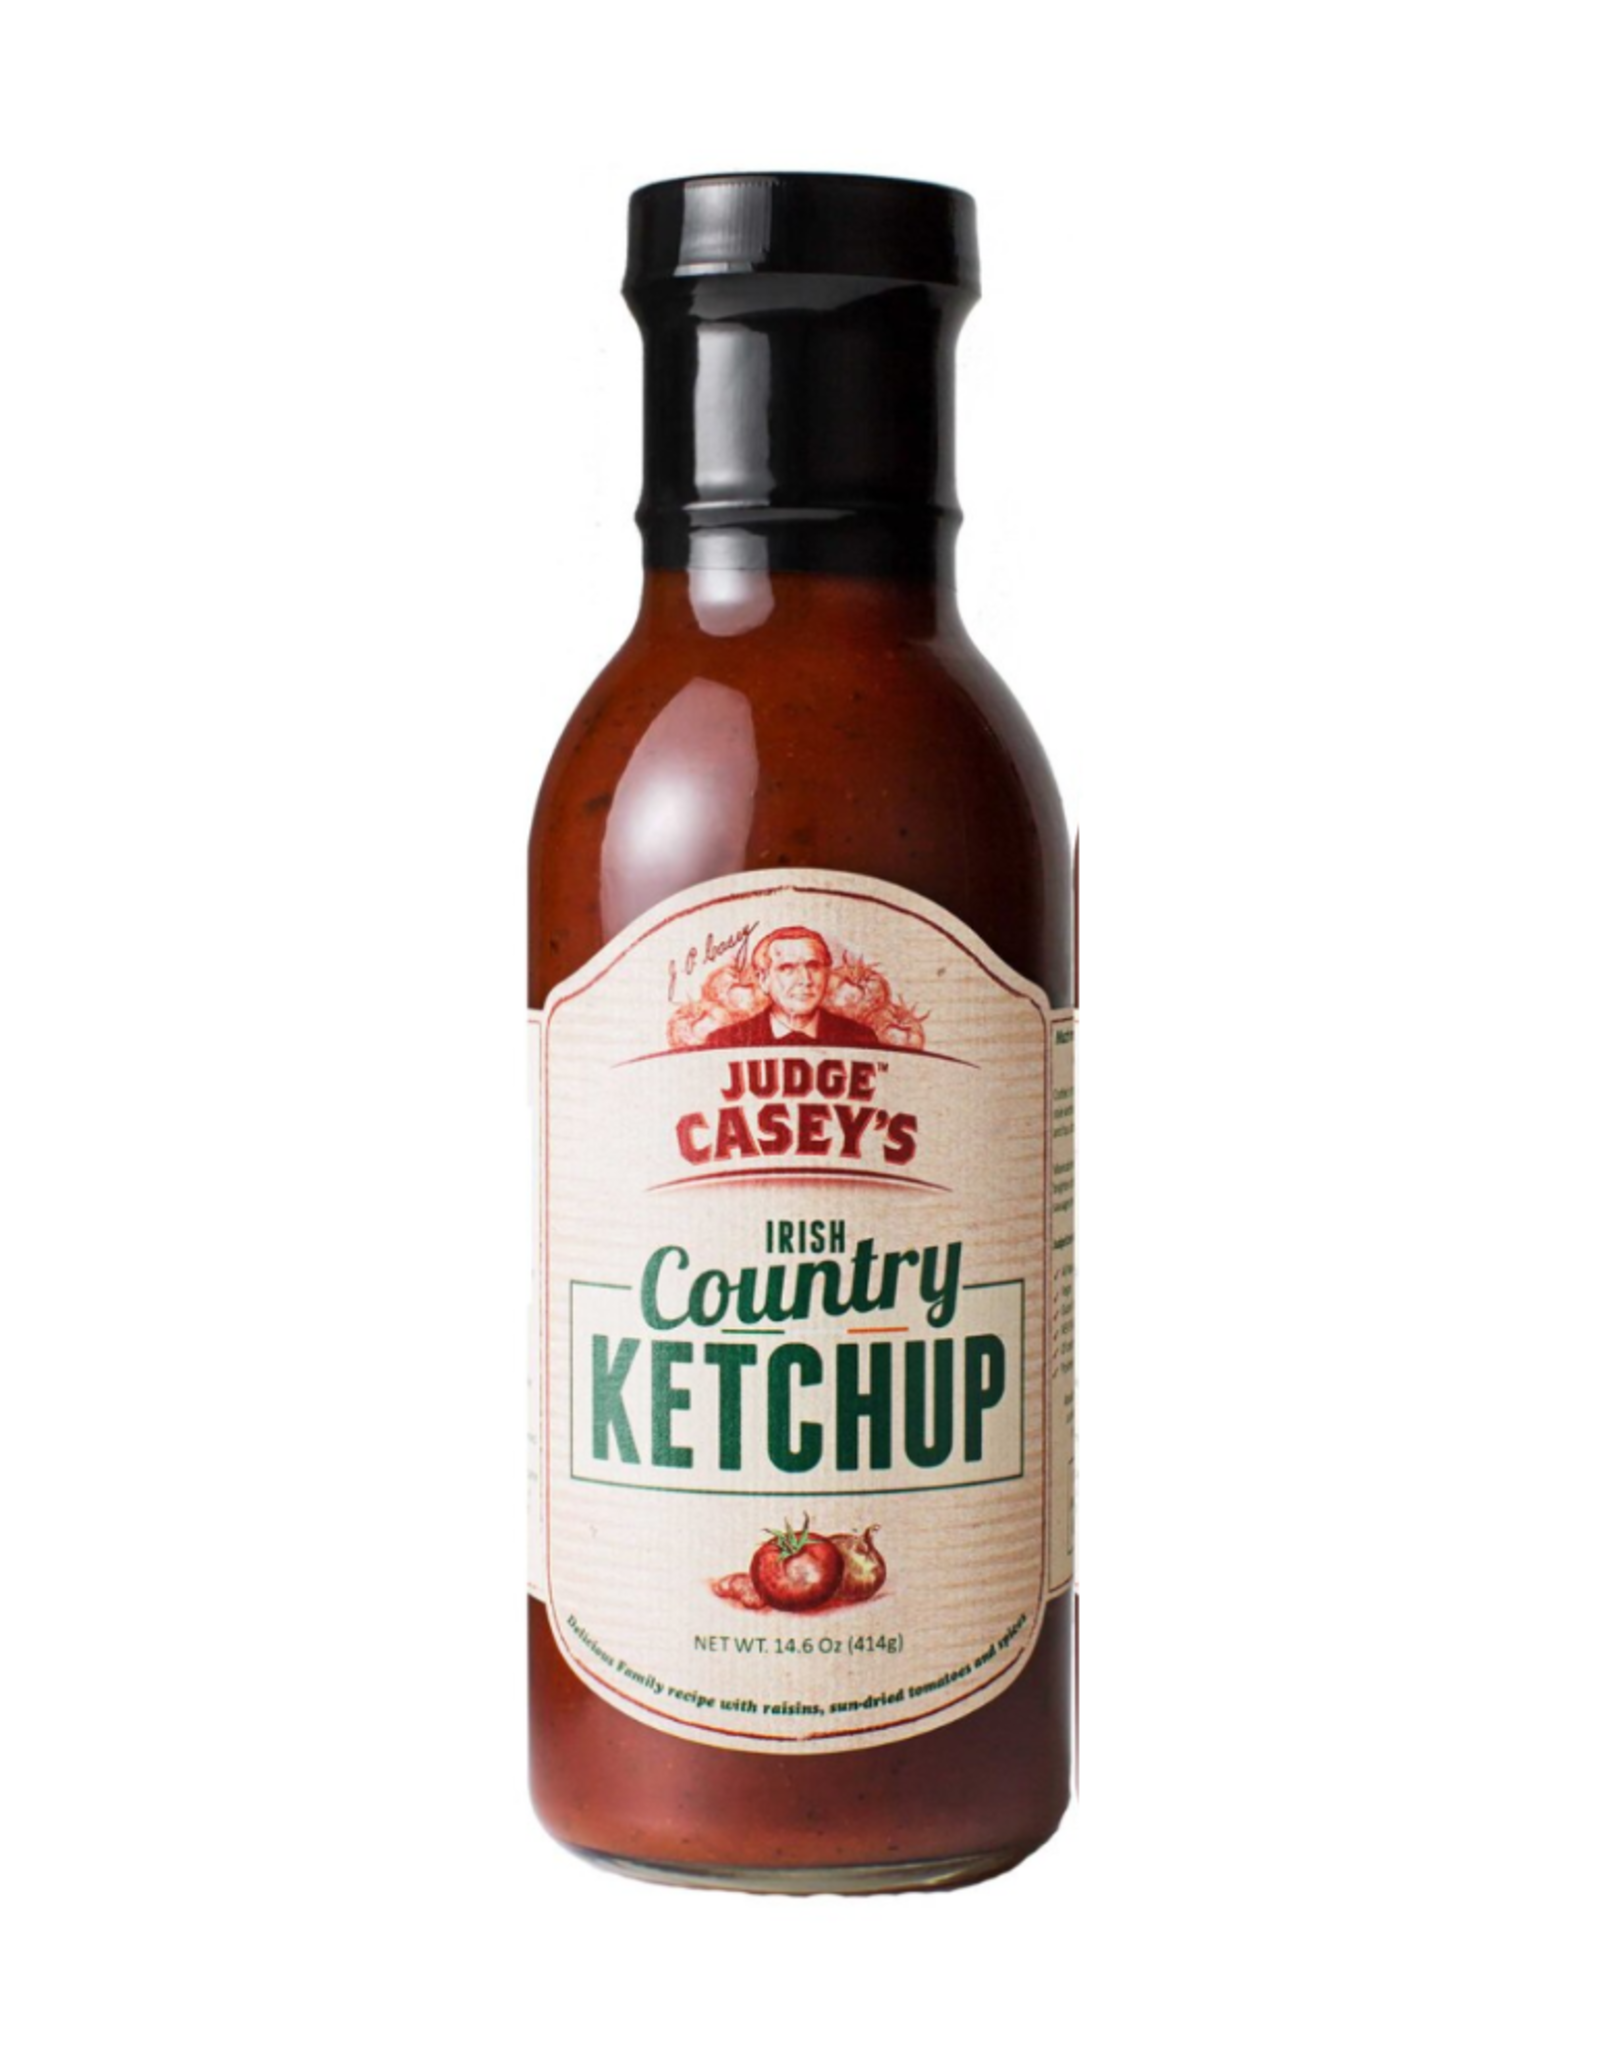 Judge Casey's Judge Casey's Irish Country Ketchup